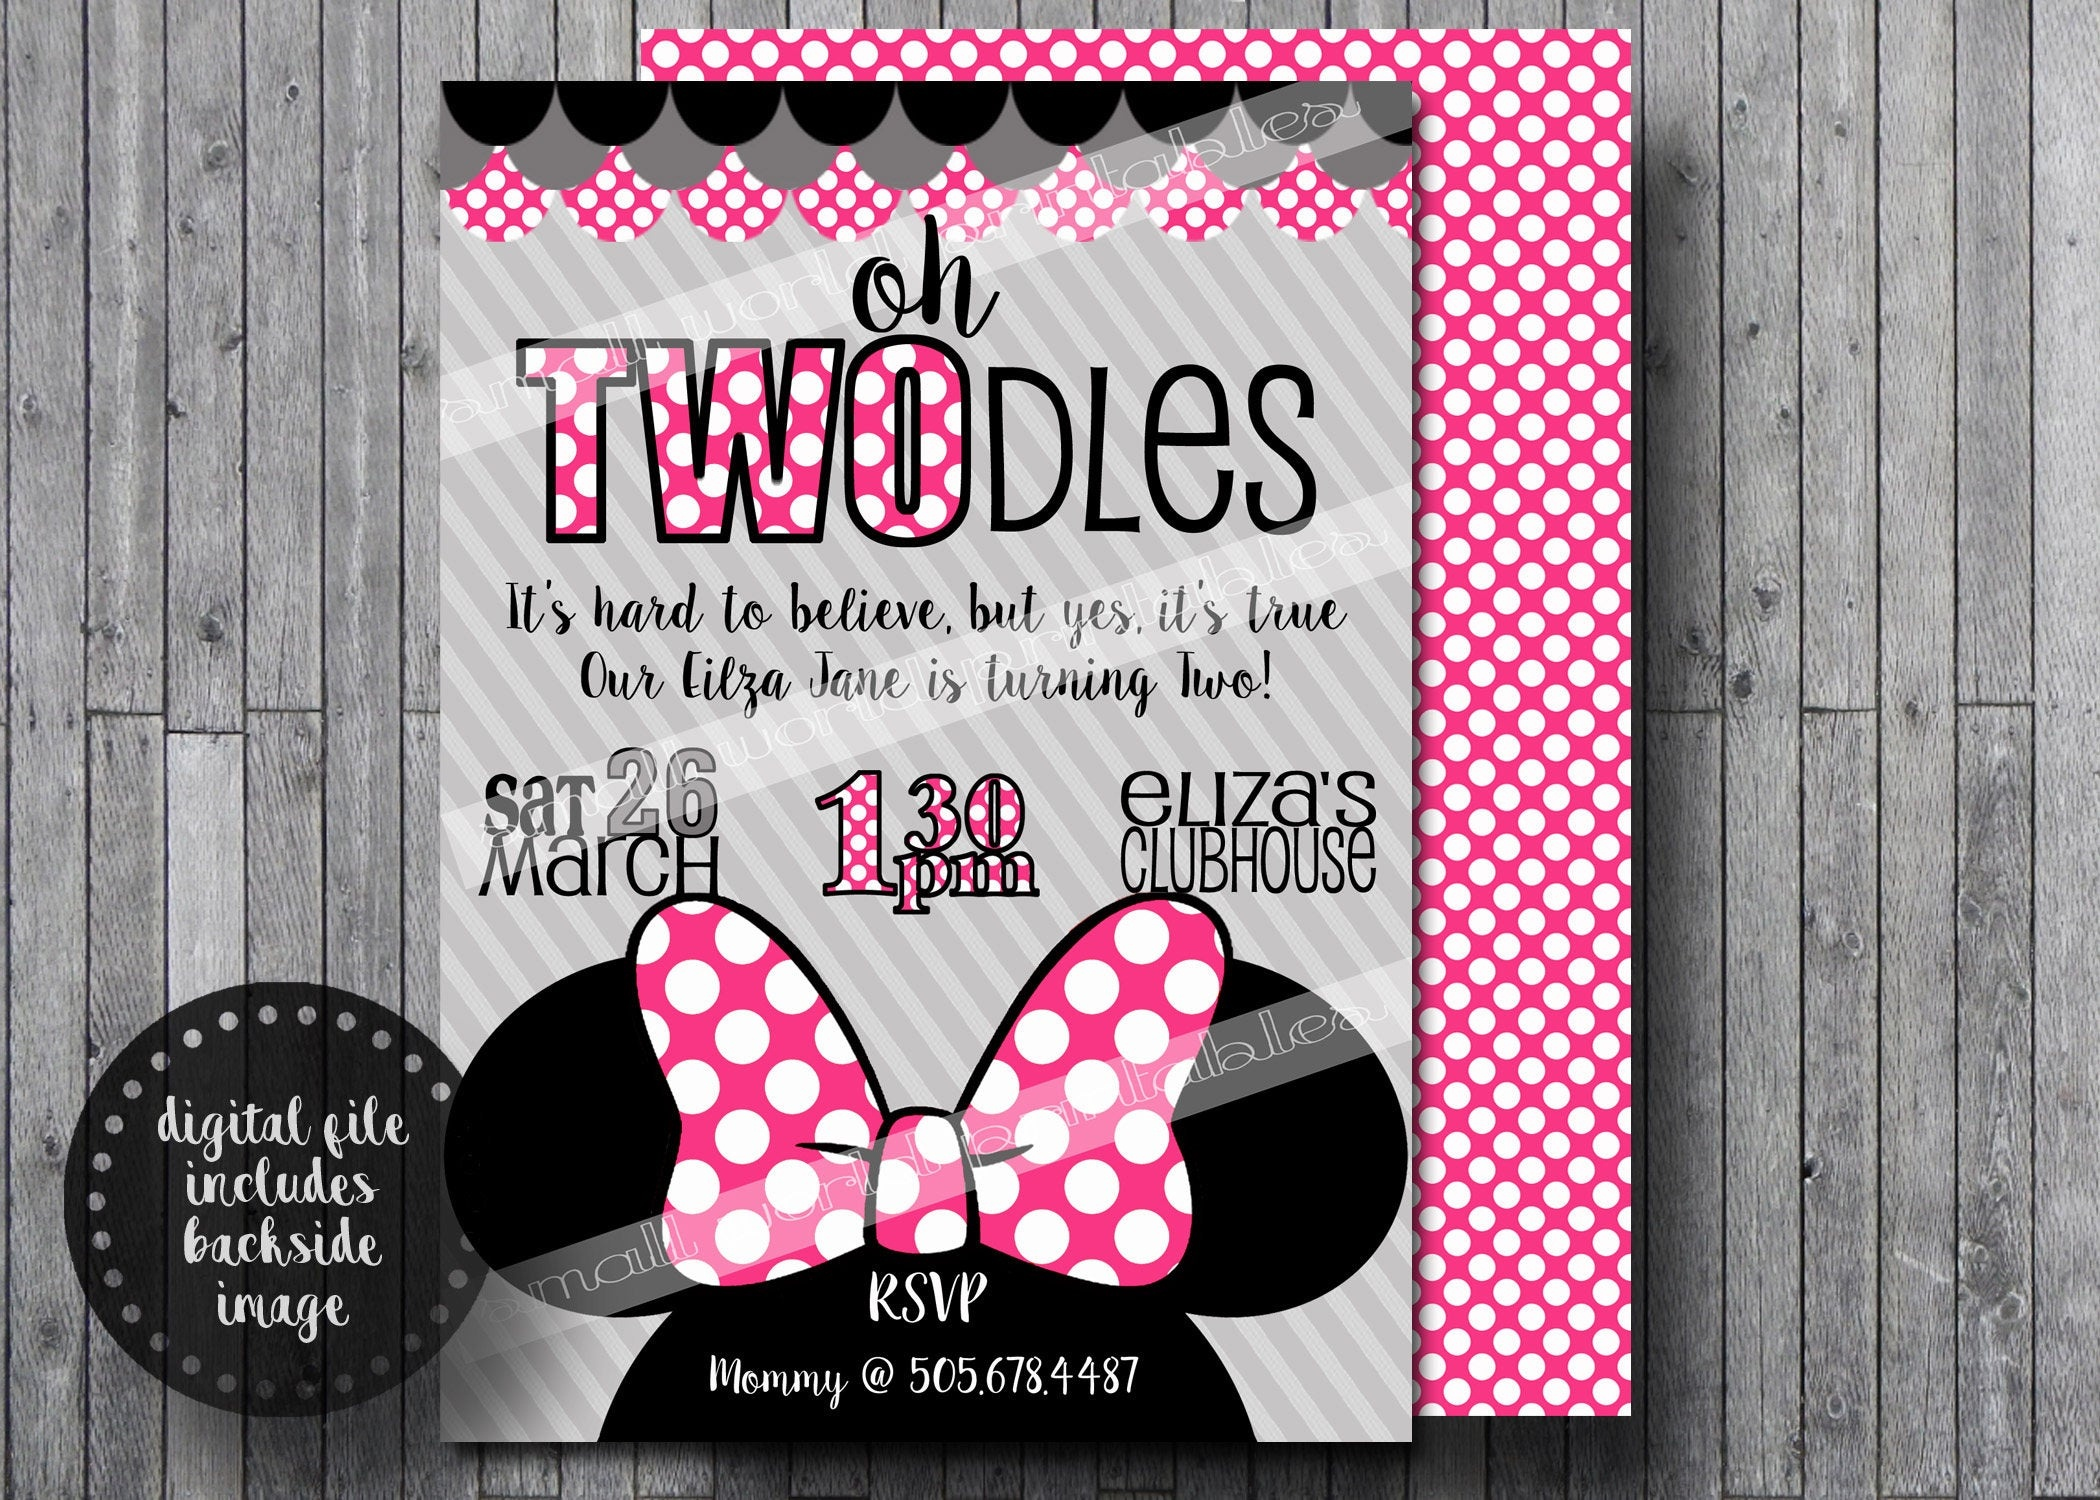 Oh Twodles Invitations Free Thank You Cards Toodles Minnie | Etsy - Free Printable Polka Dot Birthday Party Invitations